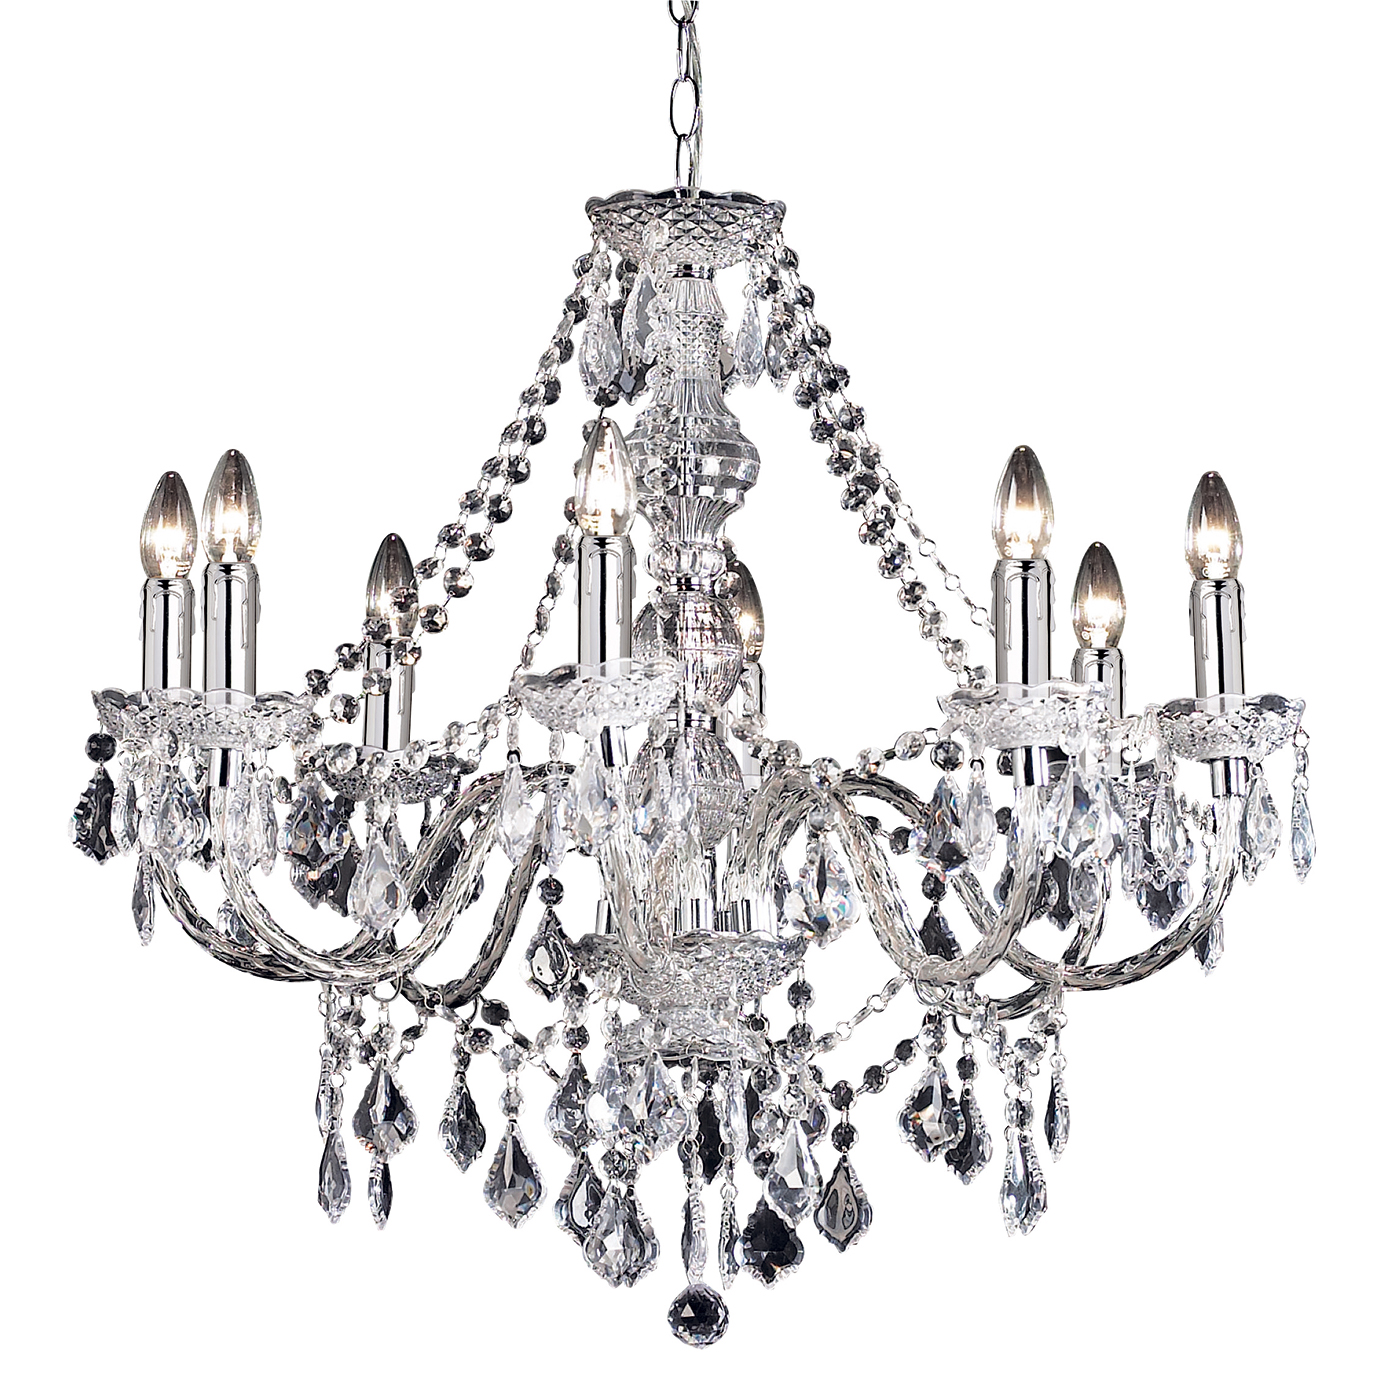 Endon Clarence chandelier 8x 60W Clear acrylic & chrome effect plate